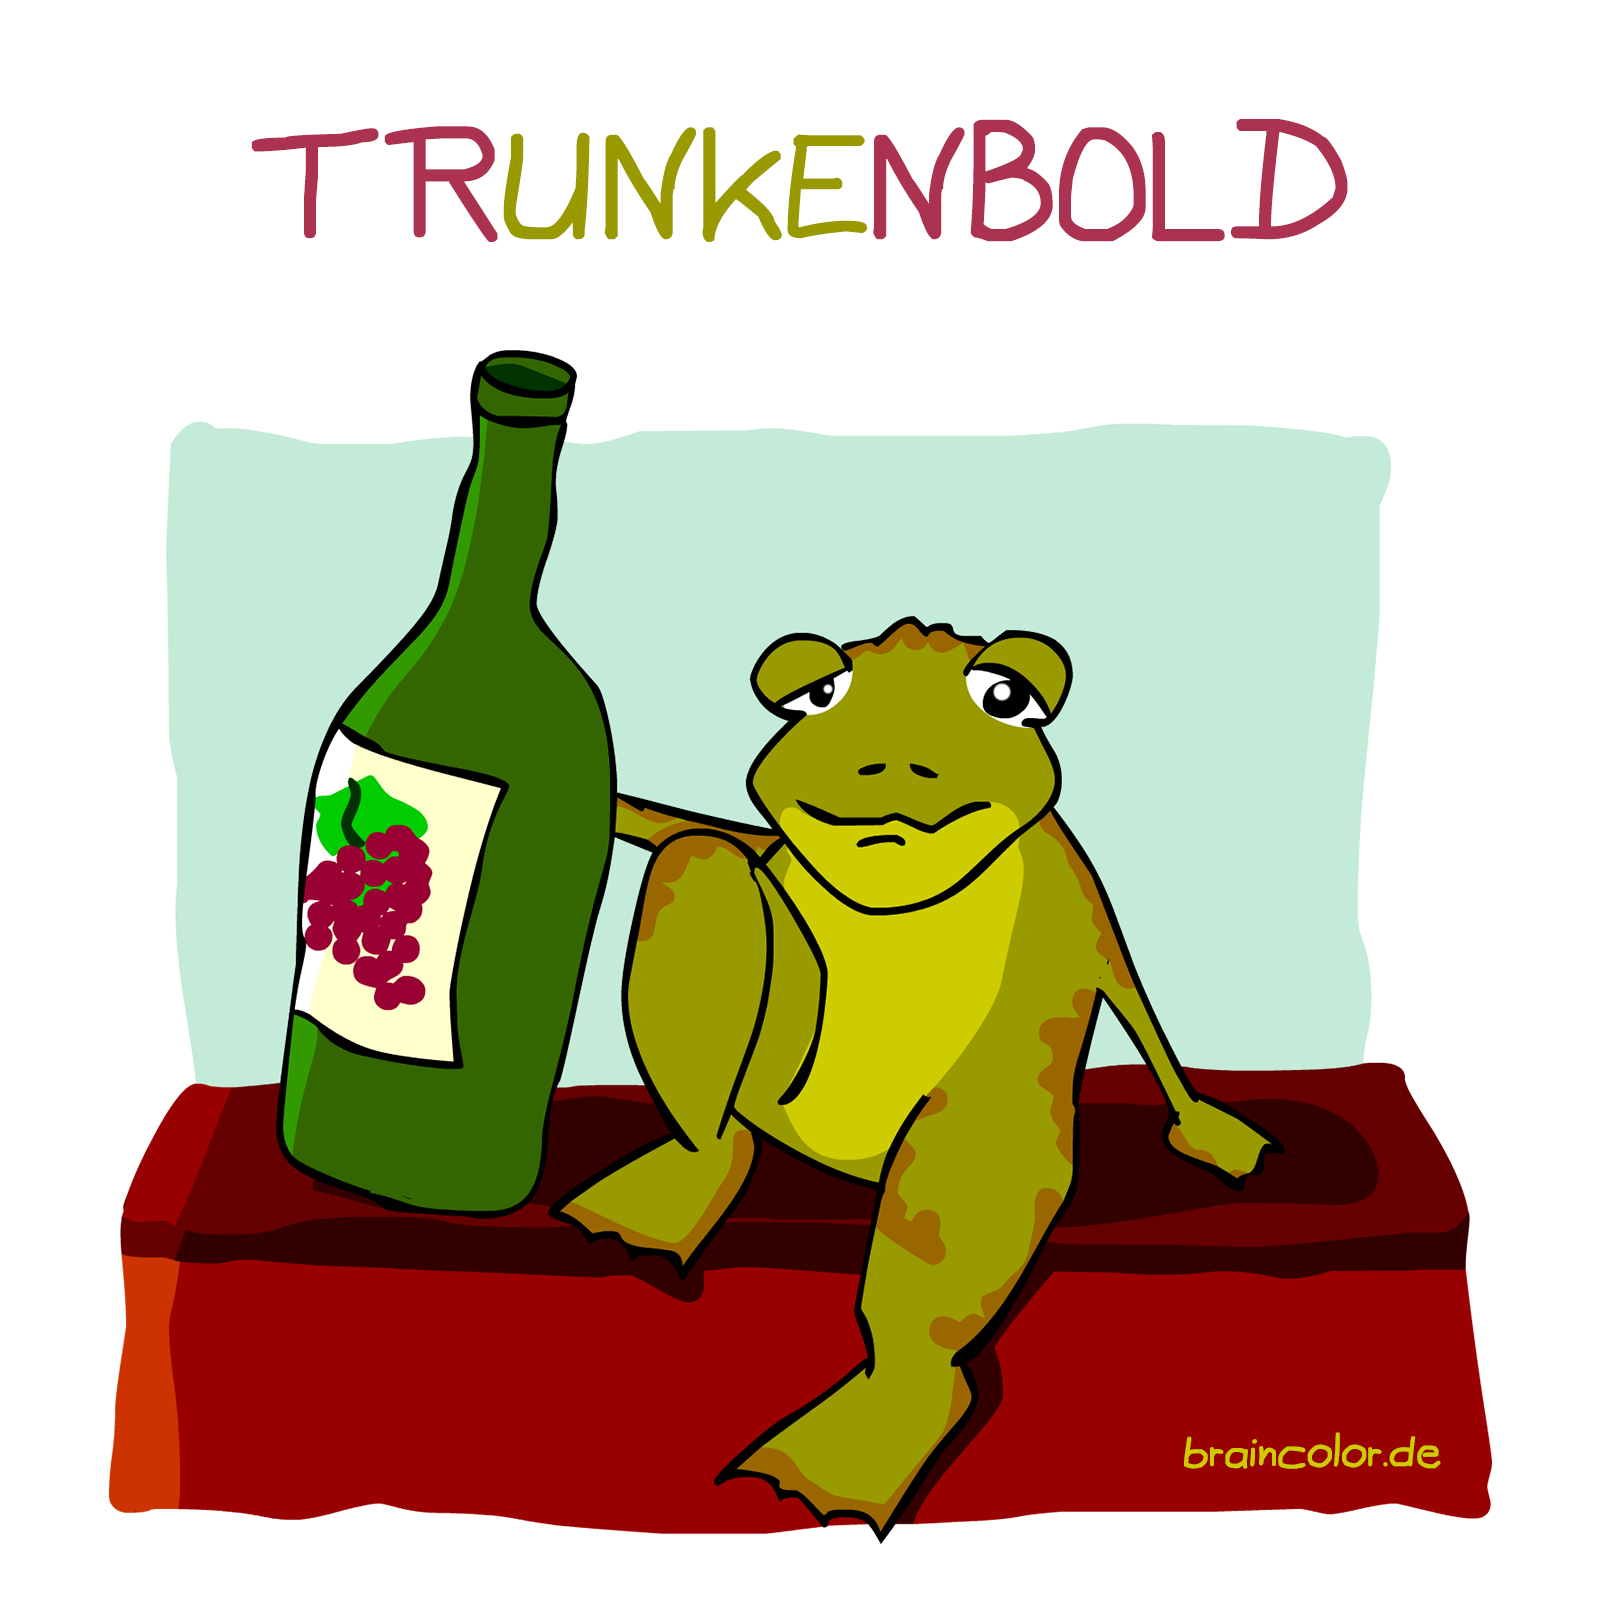 Trunkenbold